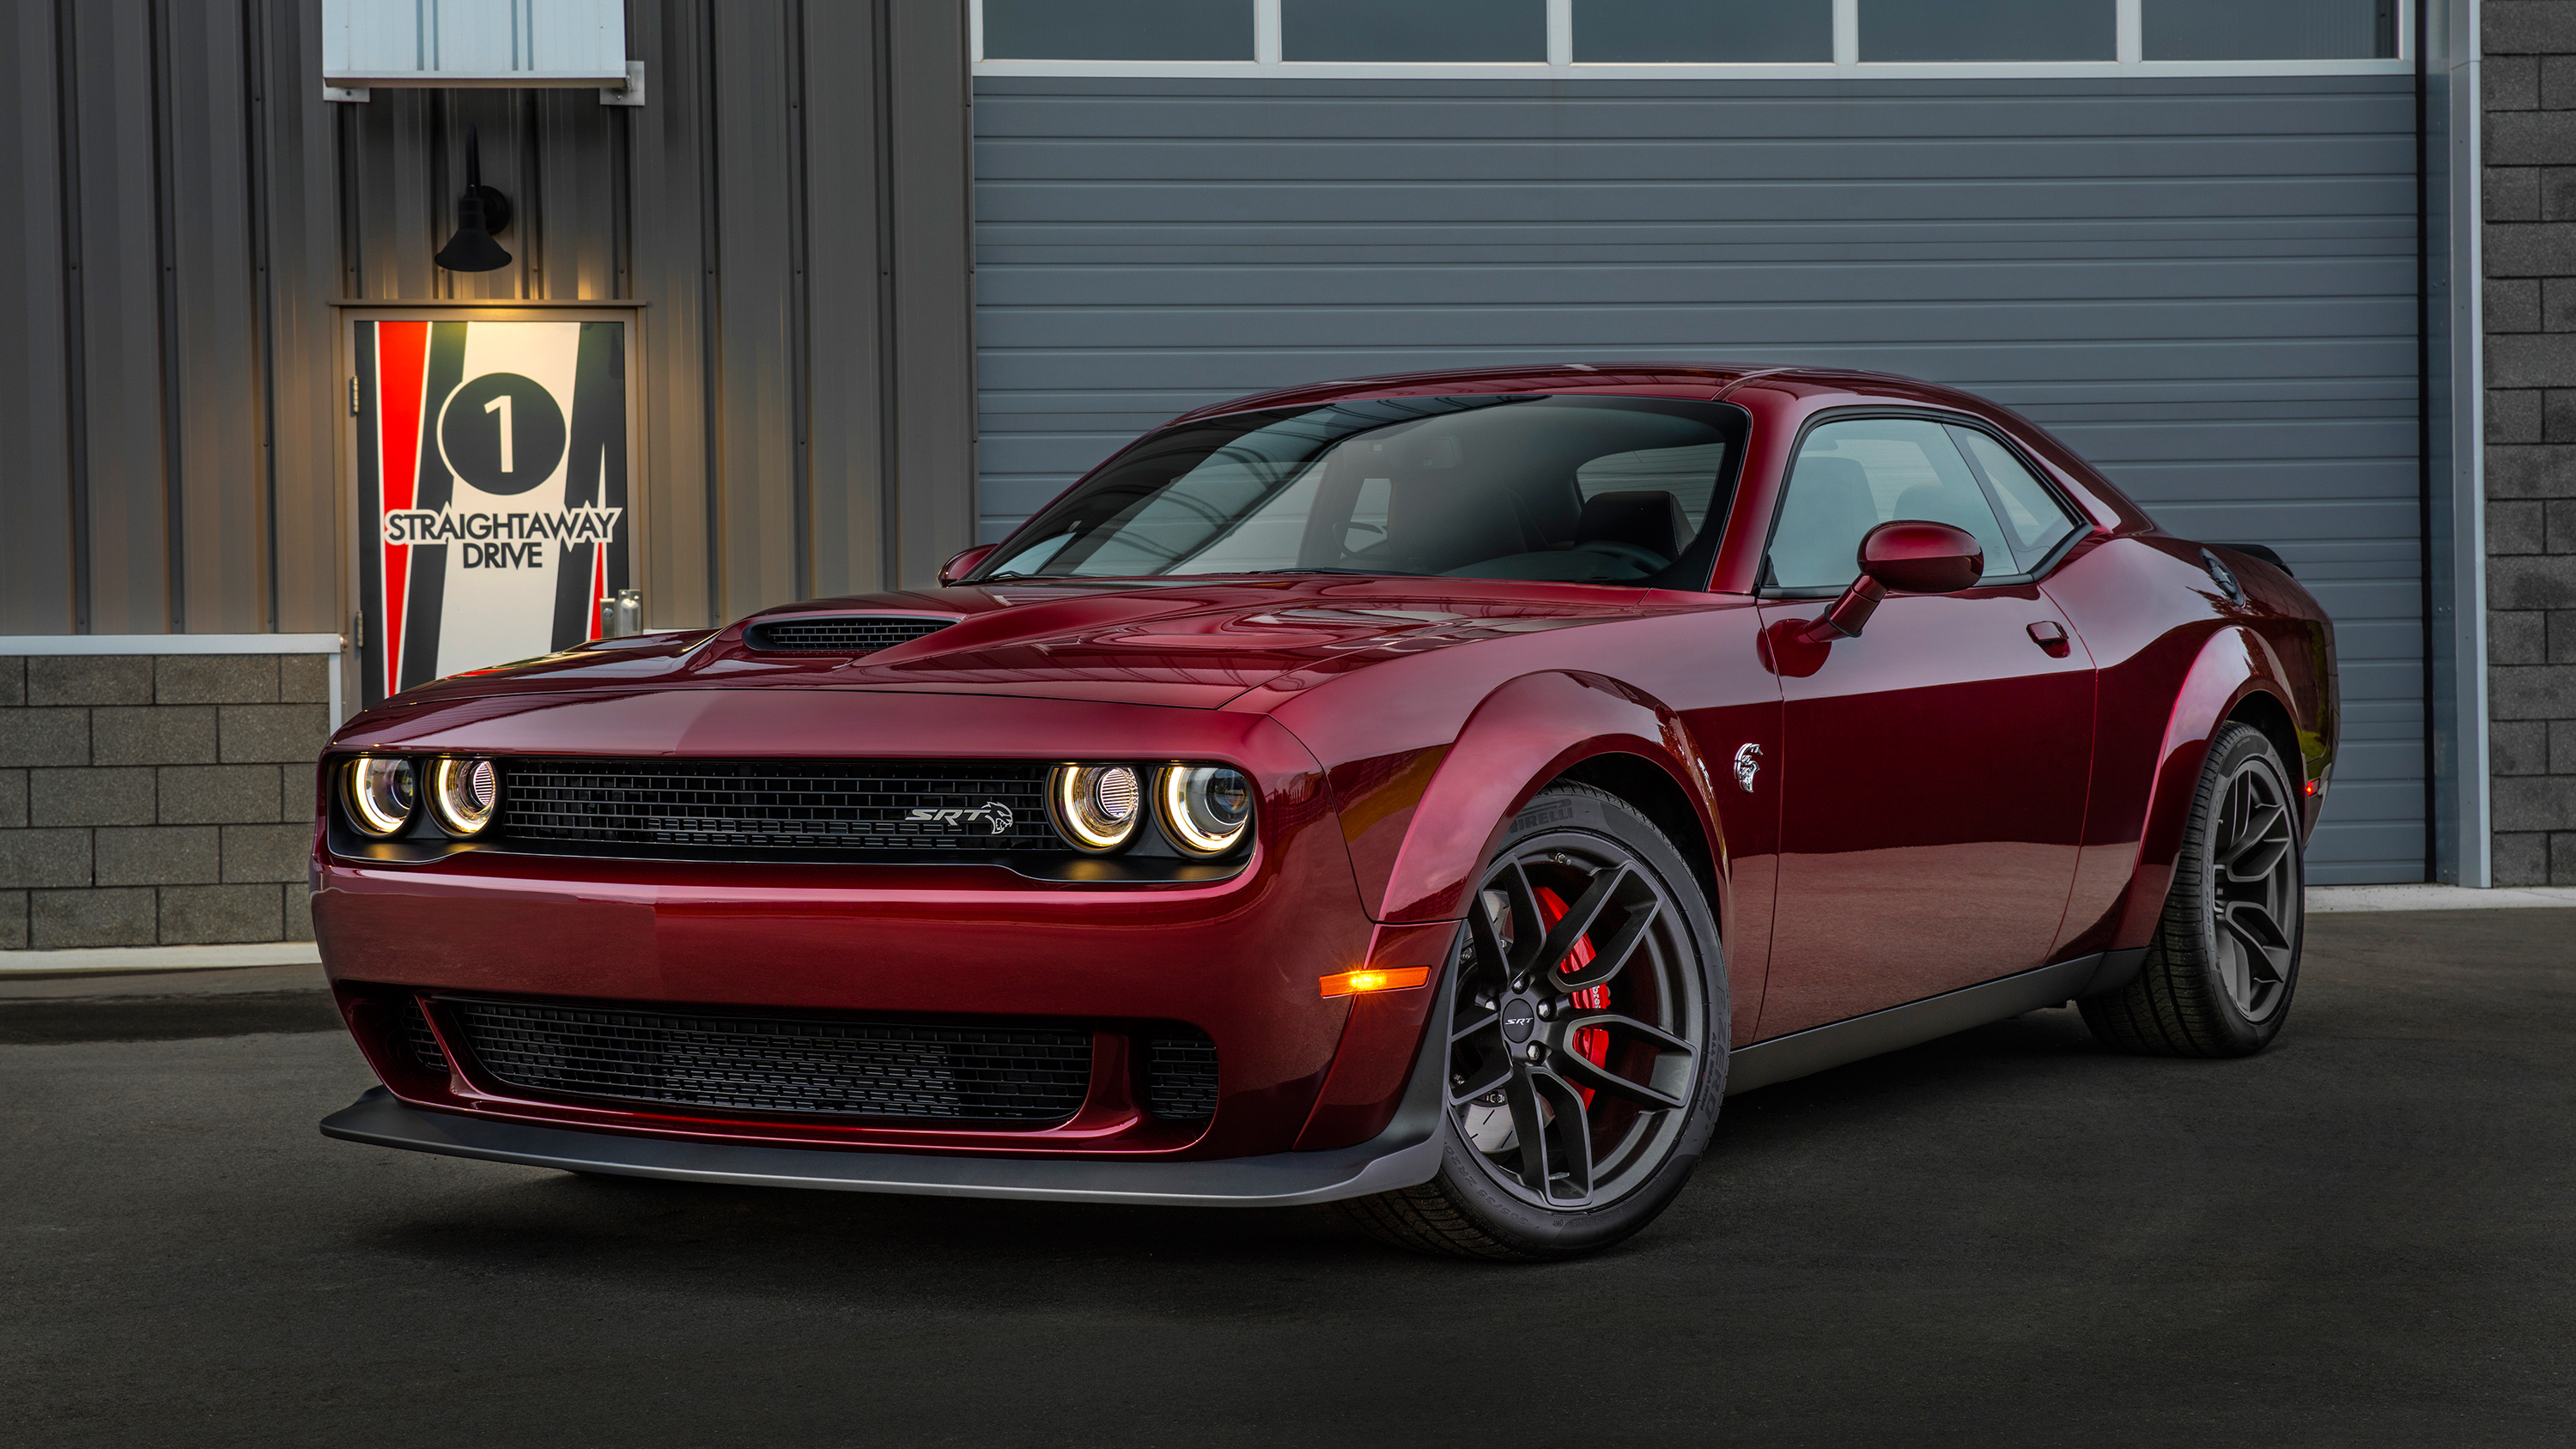 2018 Dodge Challenger Srt Hellcat Widebody Hd Wallpaper